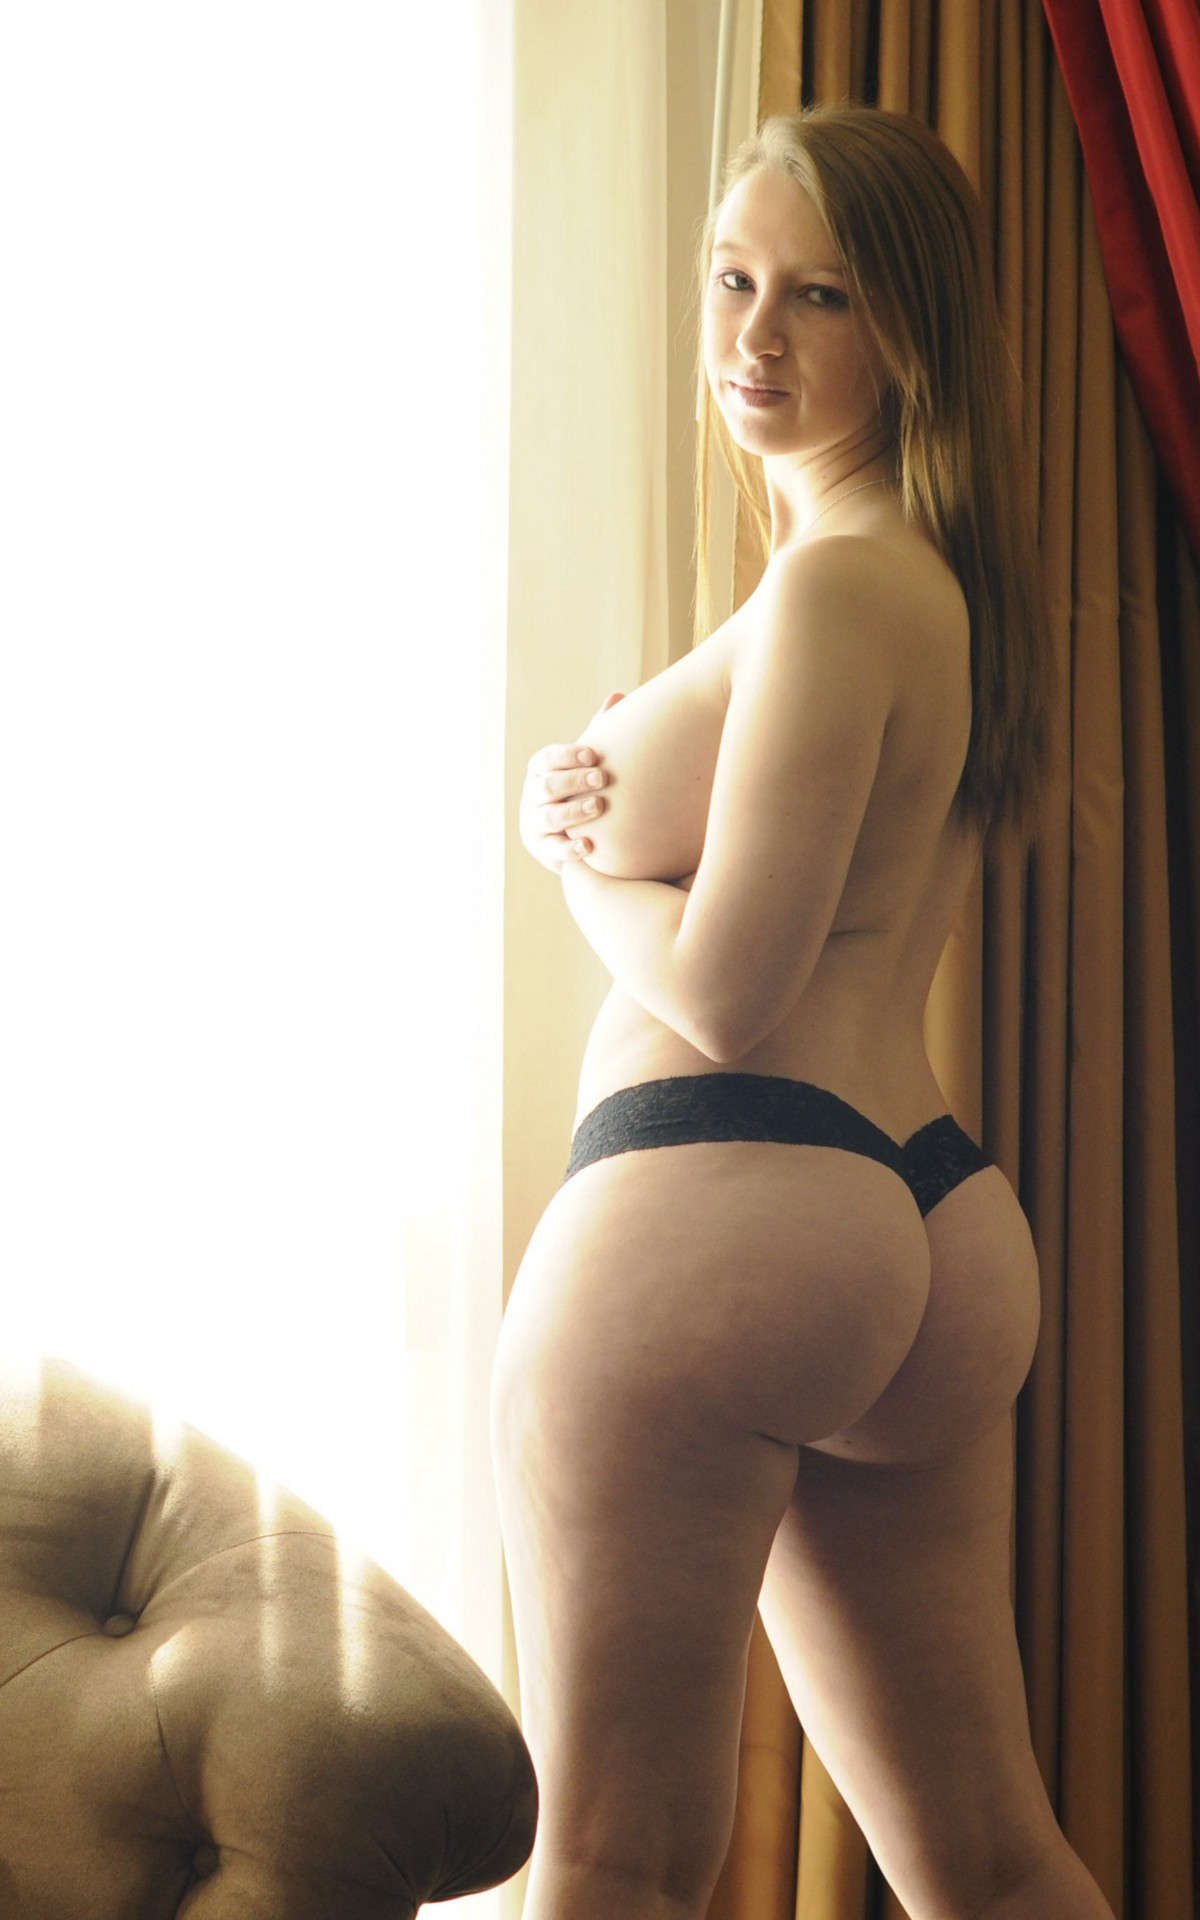 Curvy girl thick perfect